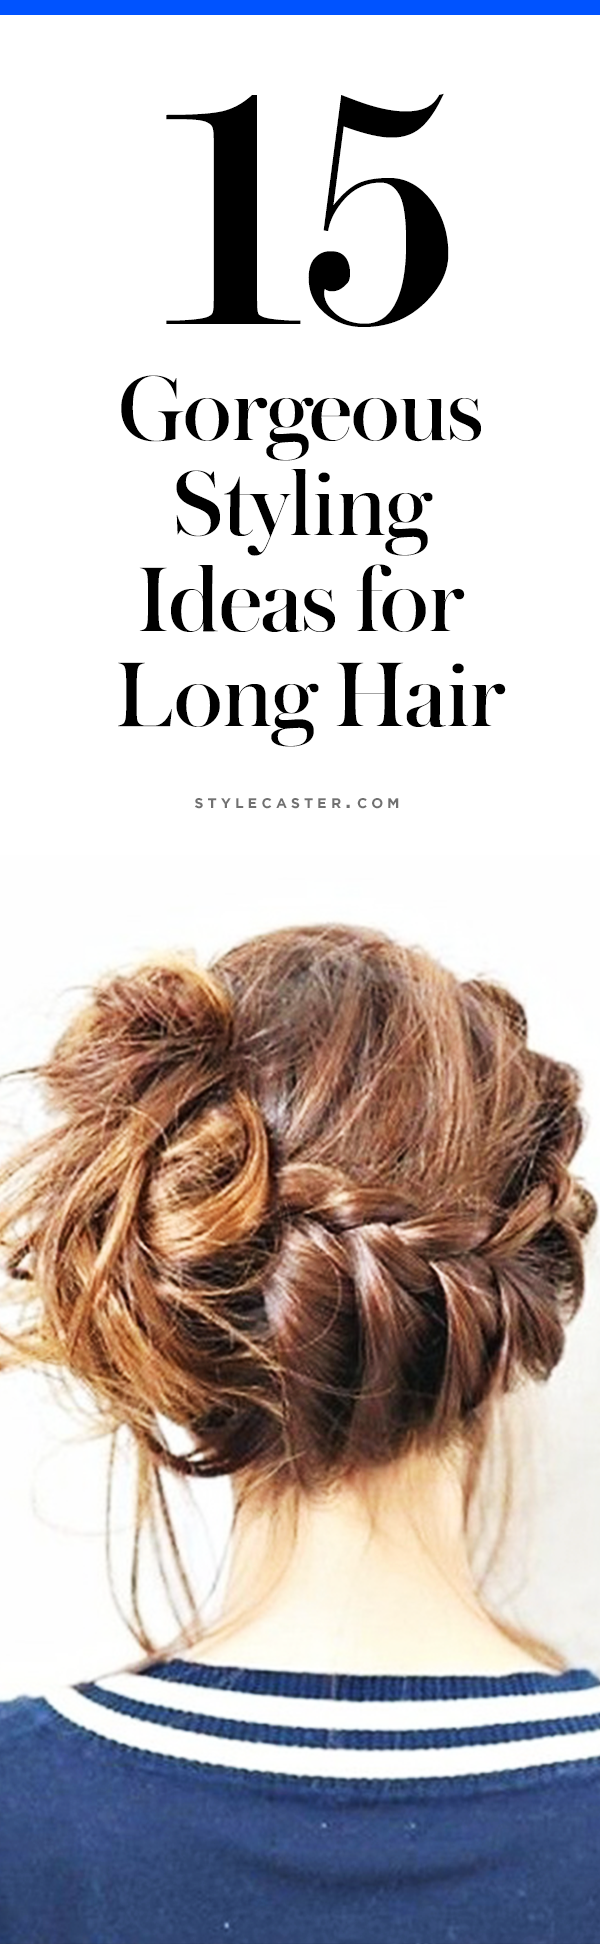 15 pretty hairstyles for long hair | @stylecaster